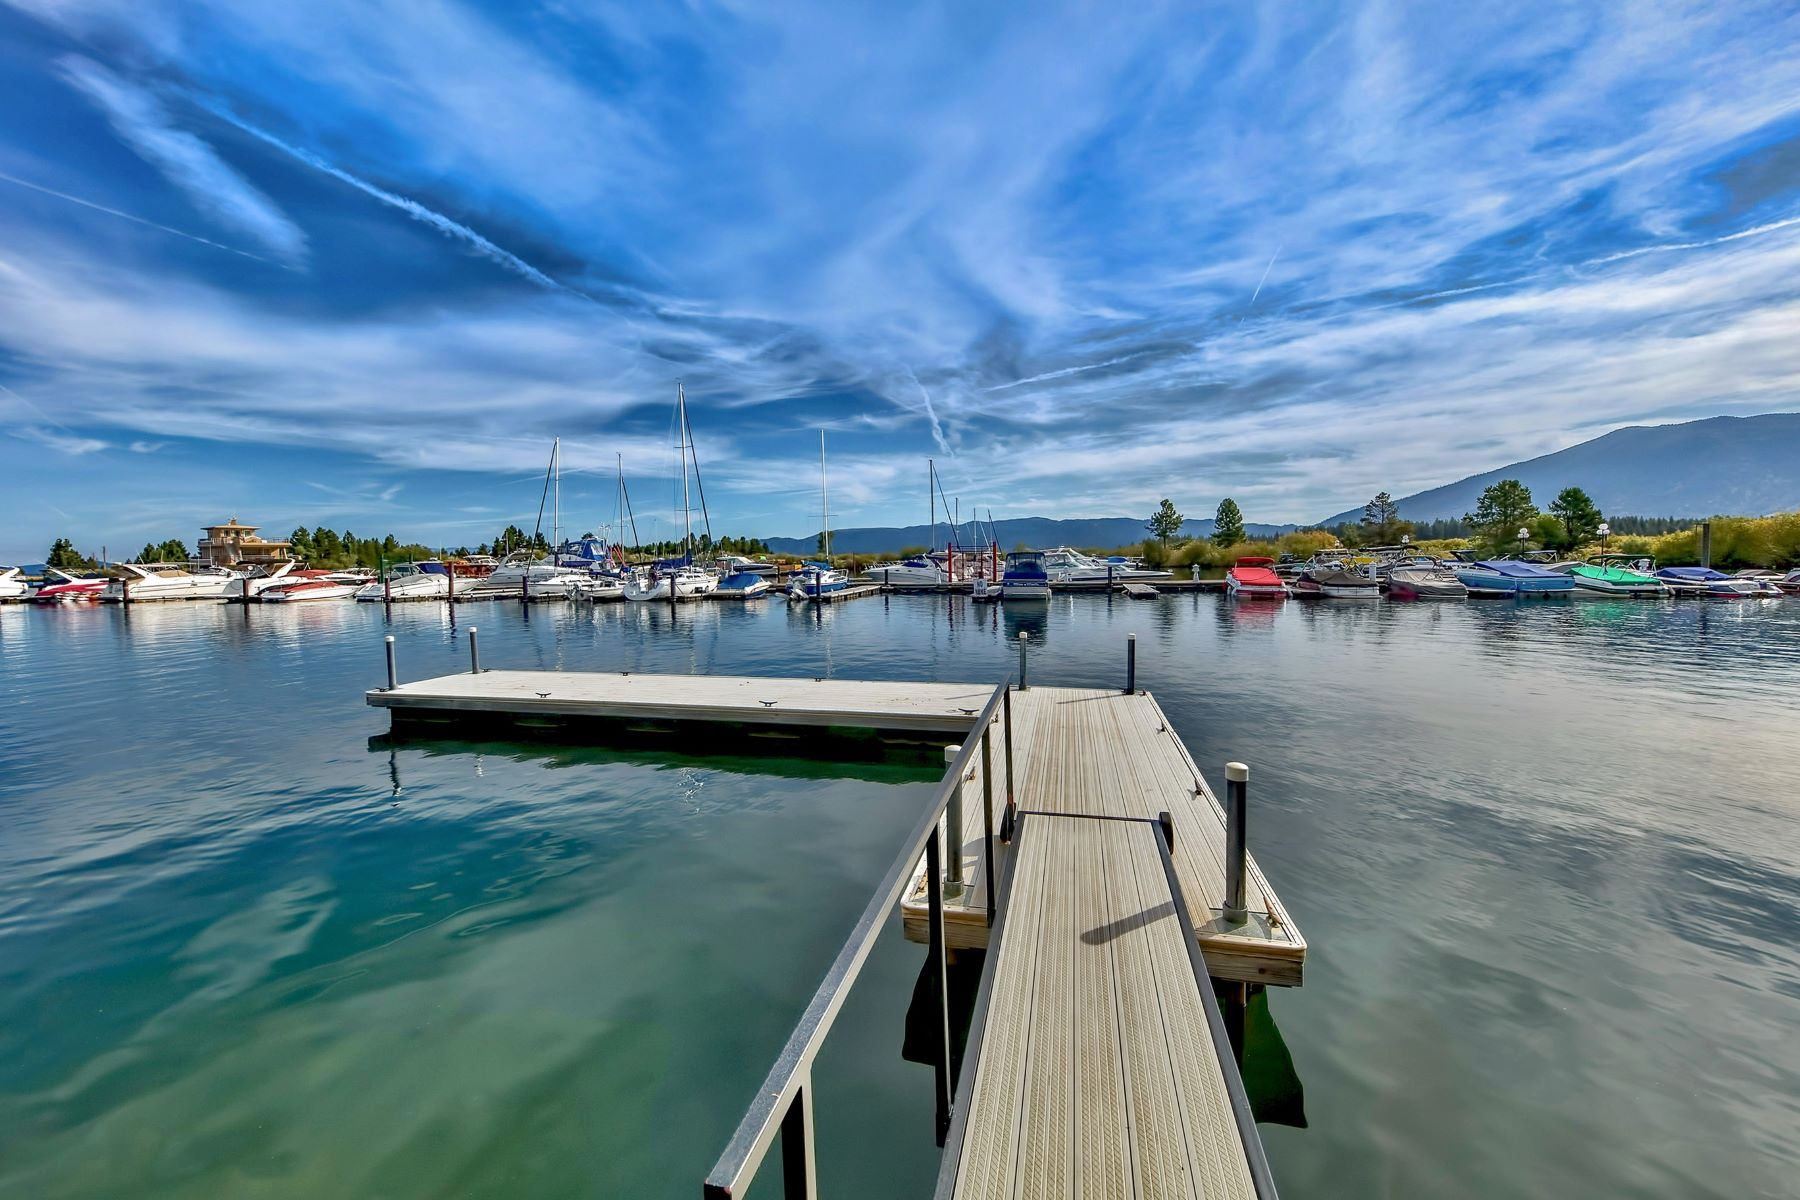 Additional photo for property listing at 439 Ala Wai Blvd, #133, South Lake Tahoe, CA 96150 439 Ala Wai Blvd. #133 South Lake Tahoe, California 96150 United States